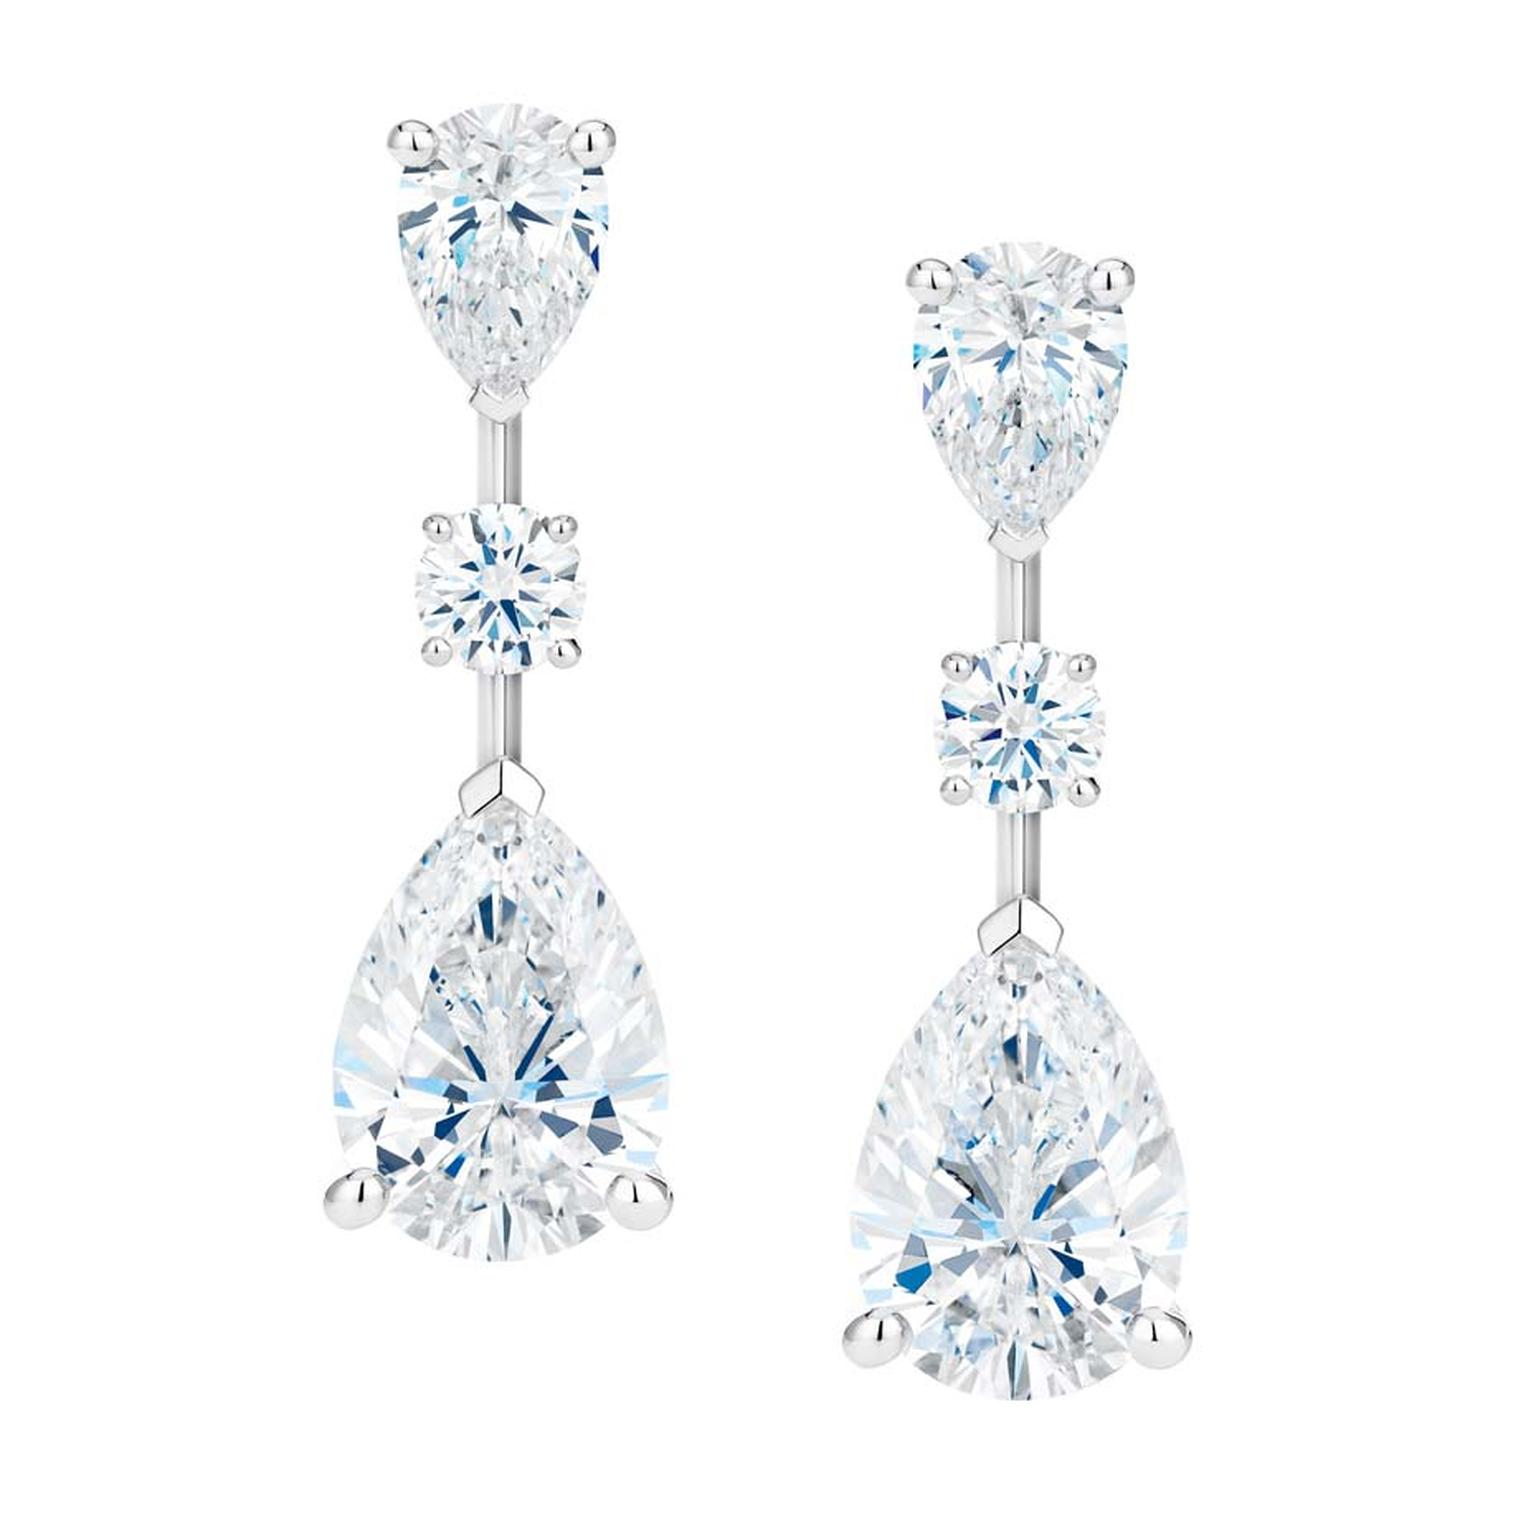 De Beers Clic Diamond Solitaire Earrings With Detachable Drops From The New Of Light